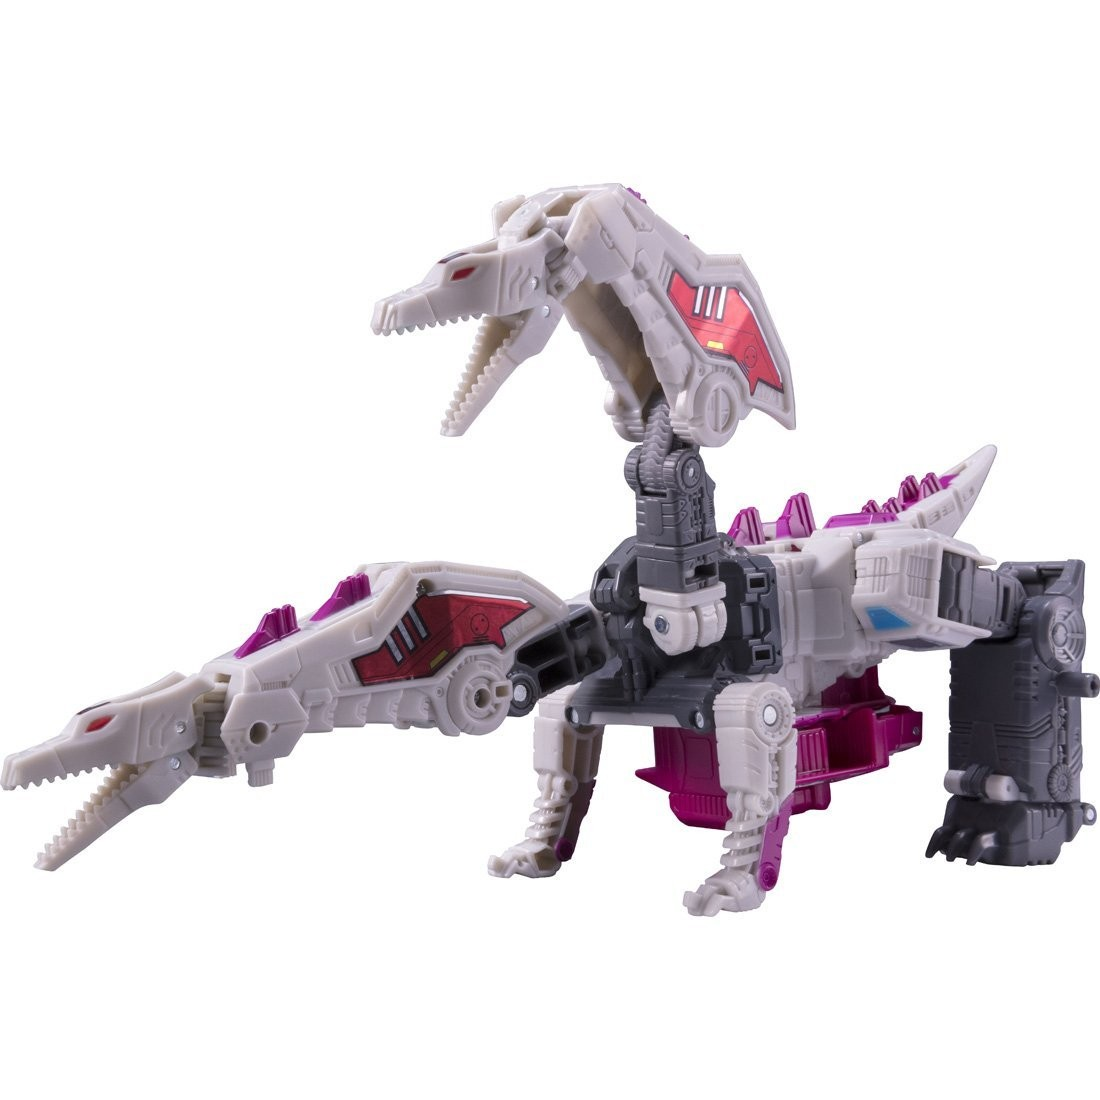 Transformers News: New Images of POTP Finished Toys Including Abominus Combined and Optimal Optimus with Flight Mode